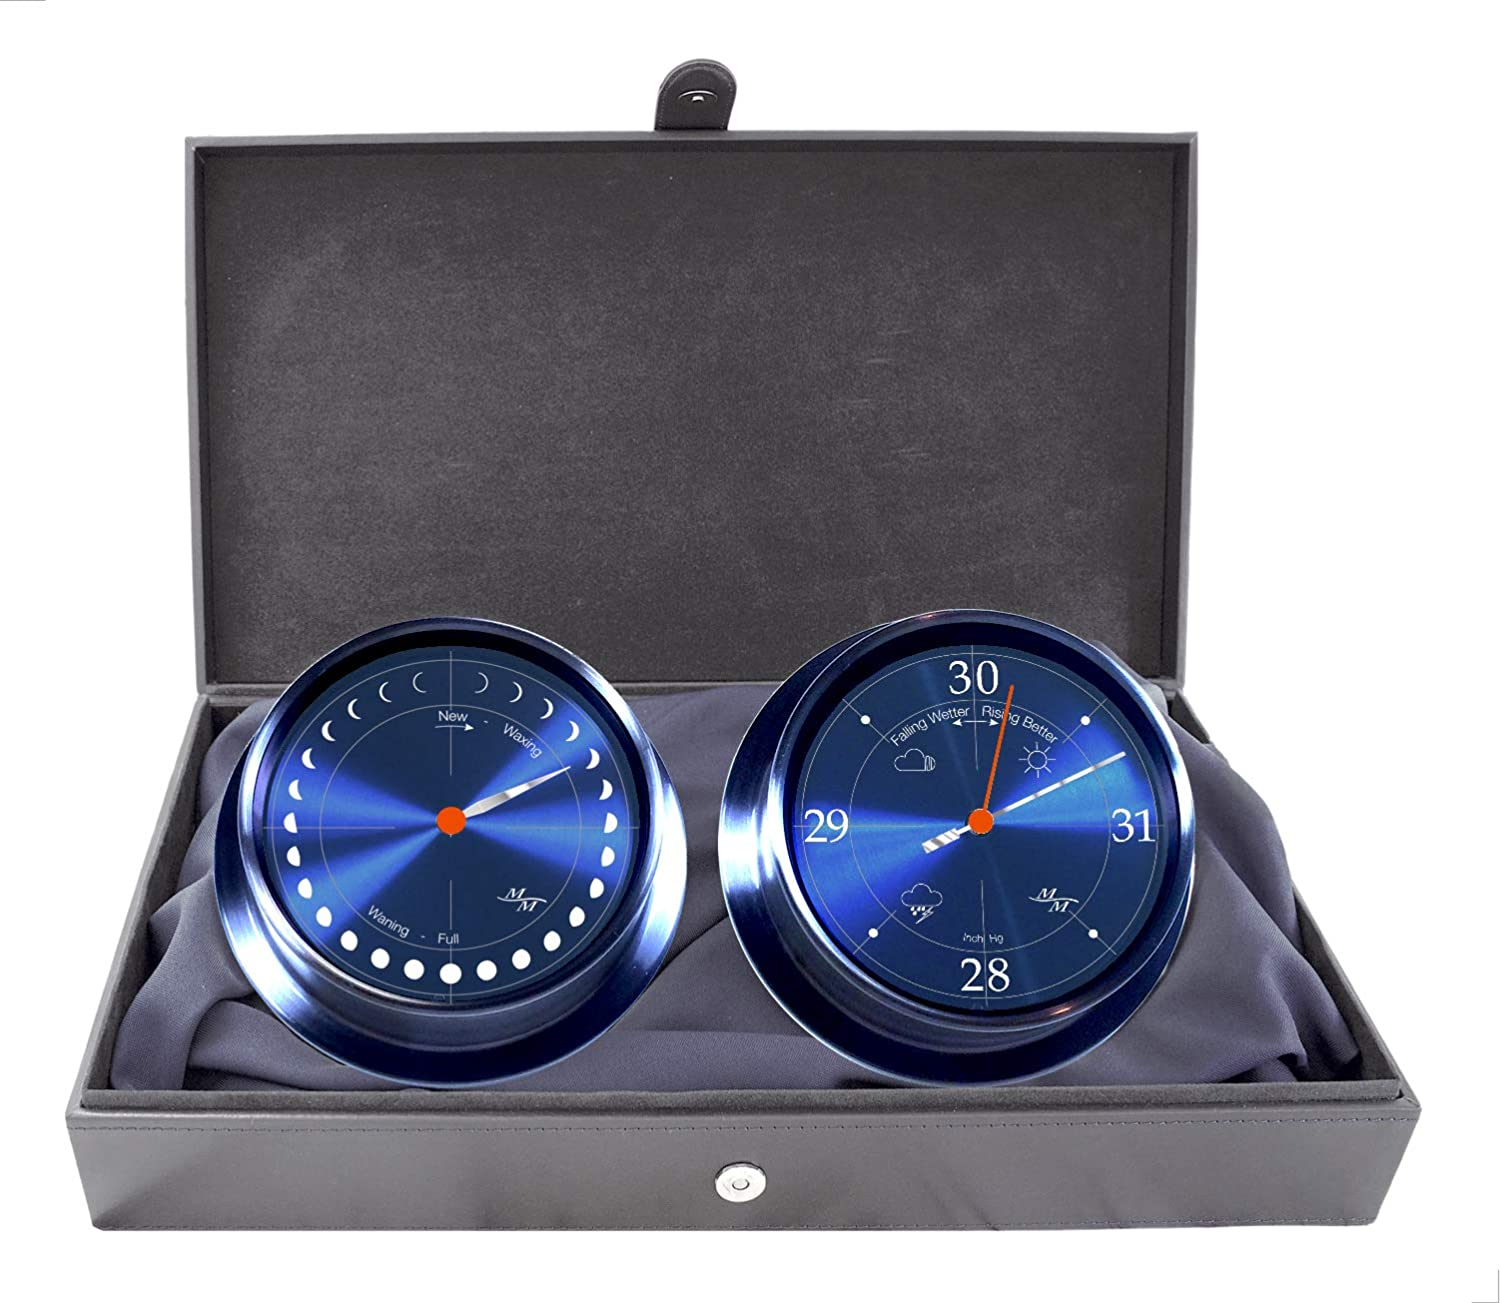 """Image of Barometers Master-Mariner Eclipse Collection Set, 5.75"""" Diameter Astronomical Moon Phase Clock and Barometer Instruments, Graphite Steel Finish, Cobalt Blue dial"""